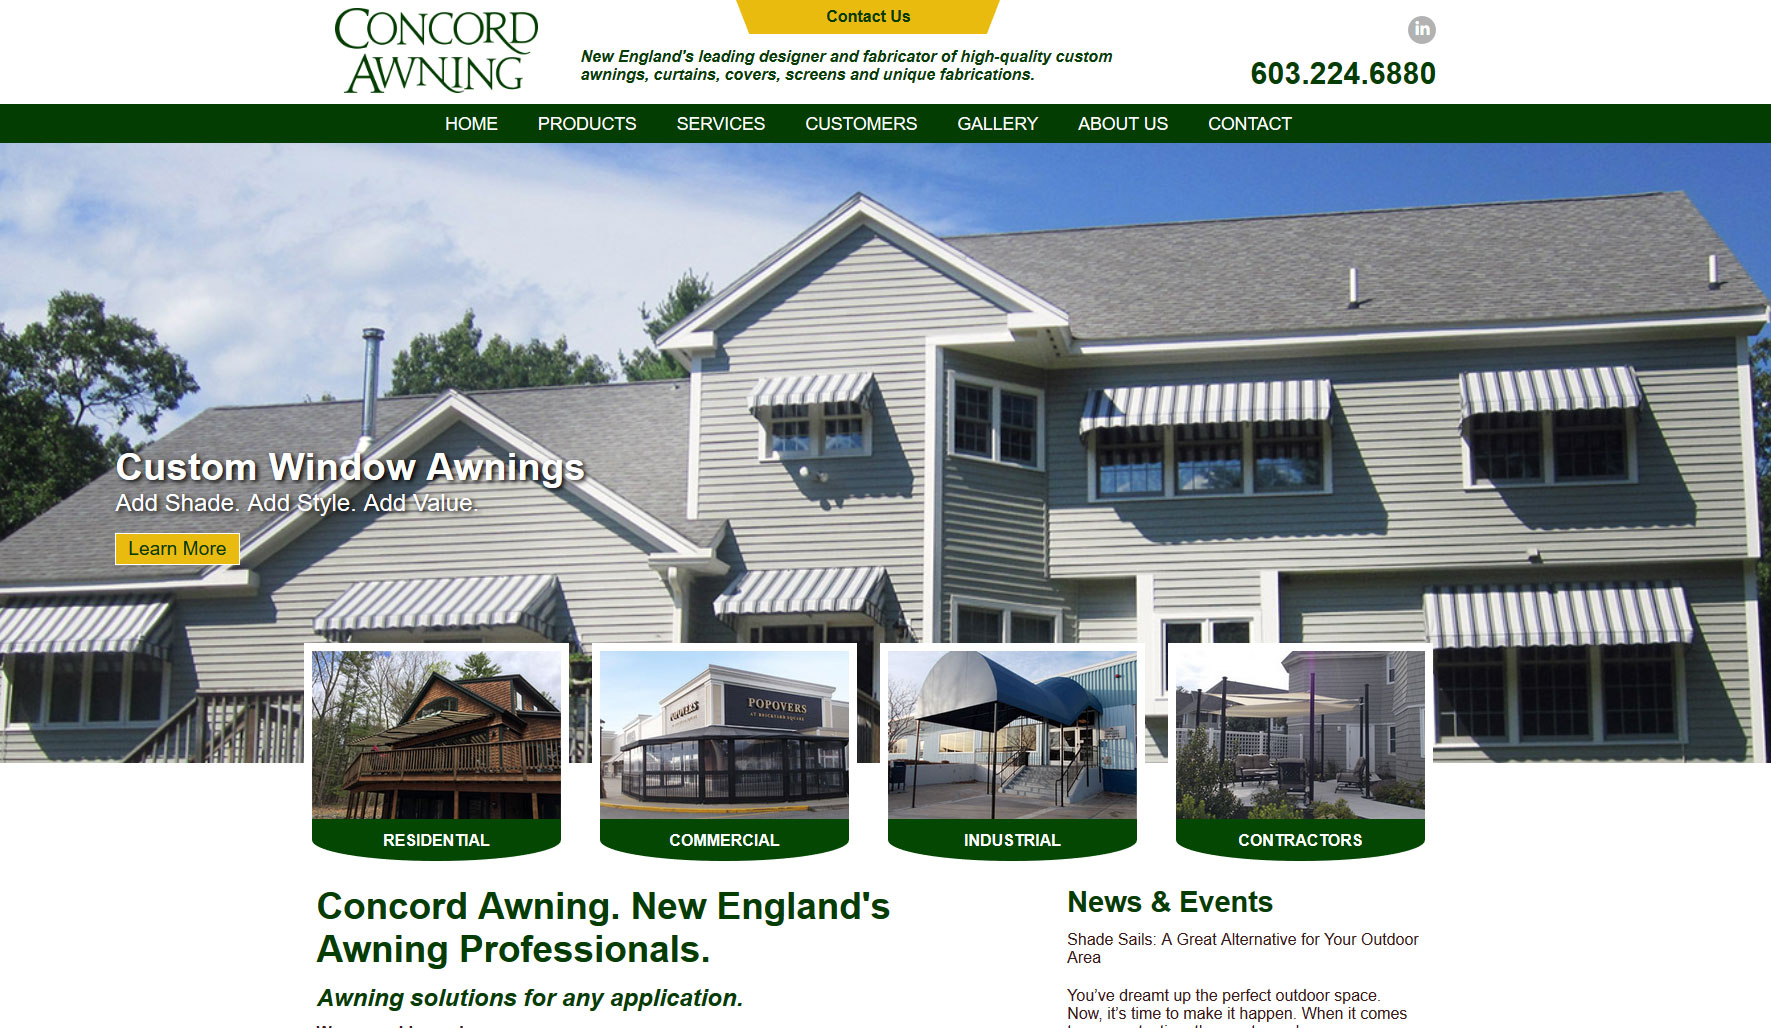 Concord Awning